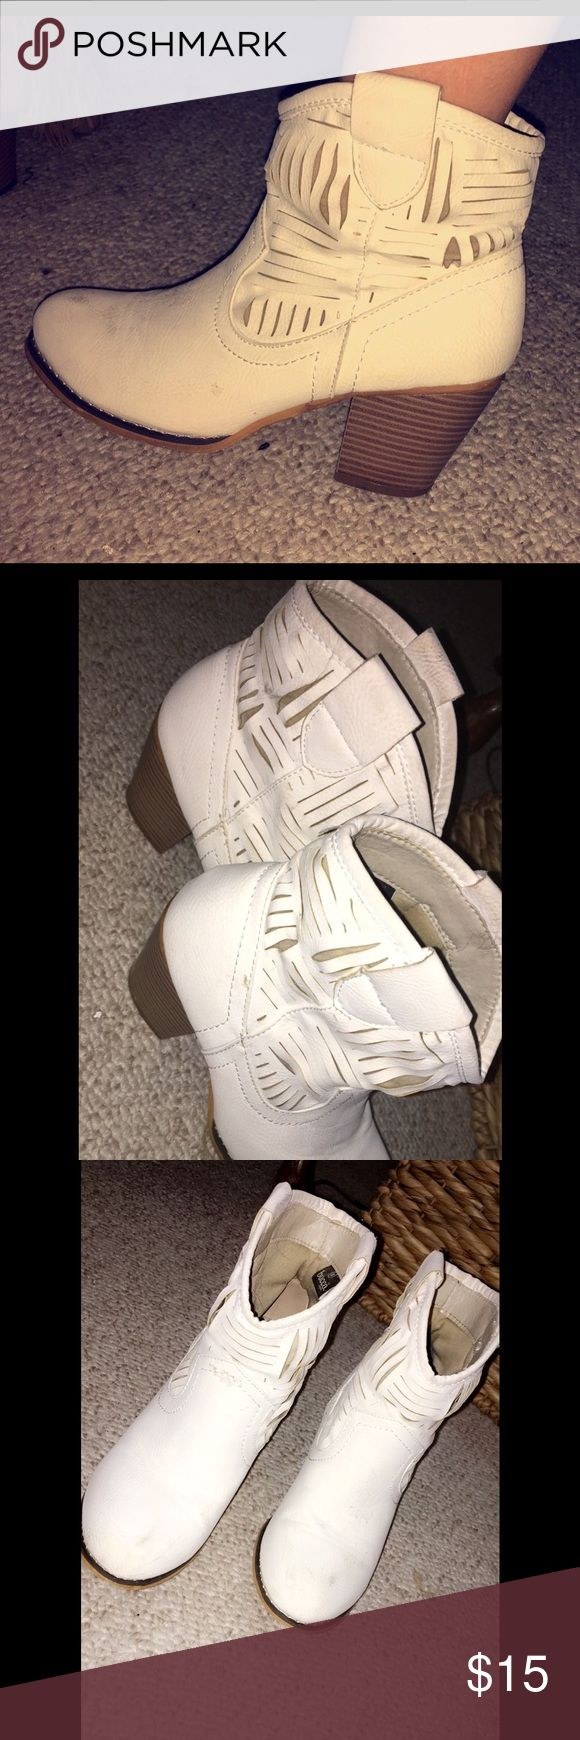 1000 Ideas About White Ankle Boots On Pinterest Bootie